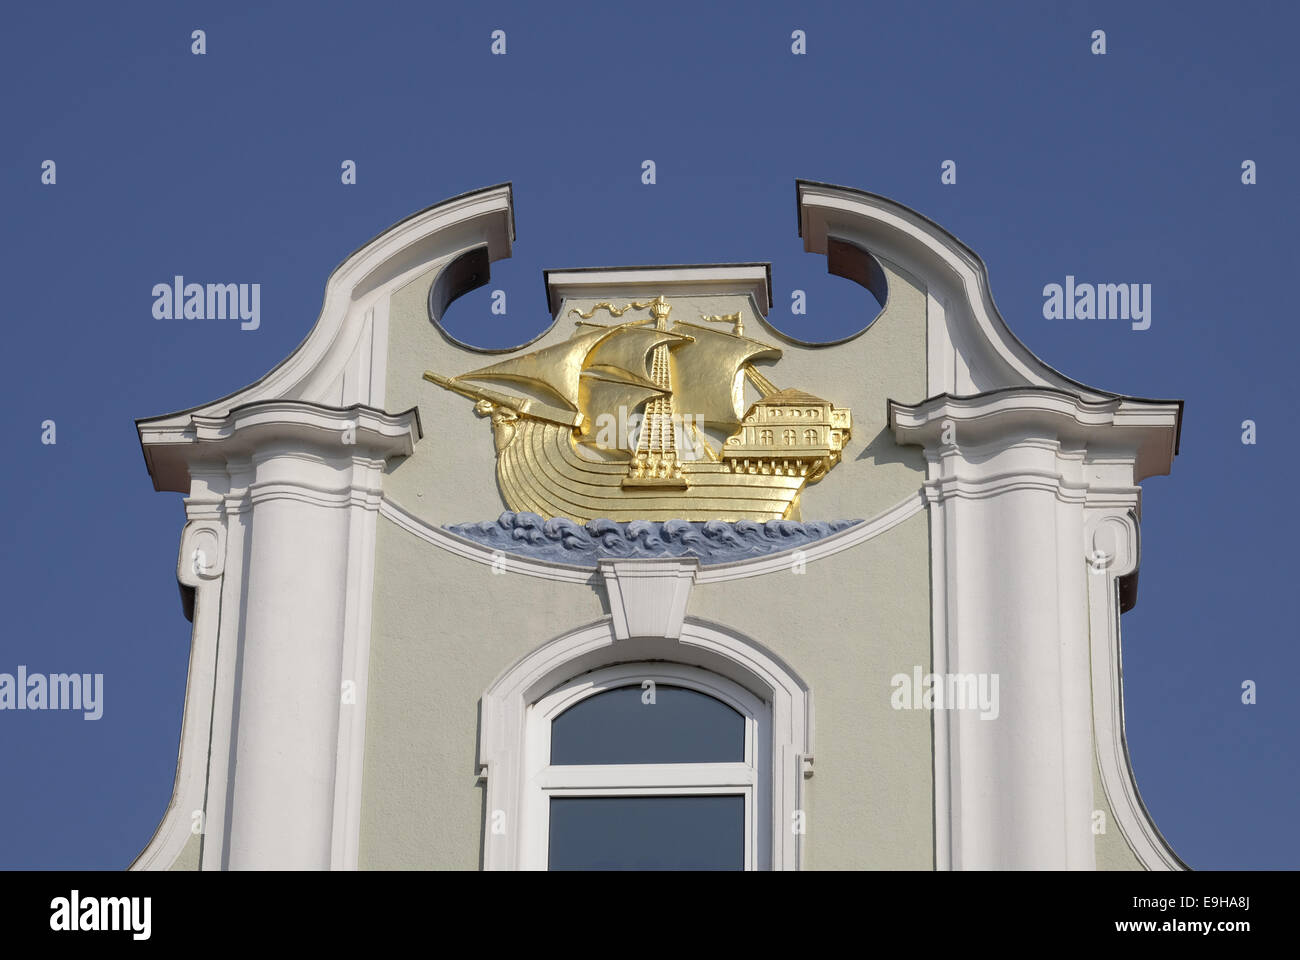 Representation of a Hanseatic cog on a merchant's house, Lübeck, Schleswig-Holstein, Germany - Stock Image